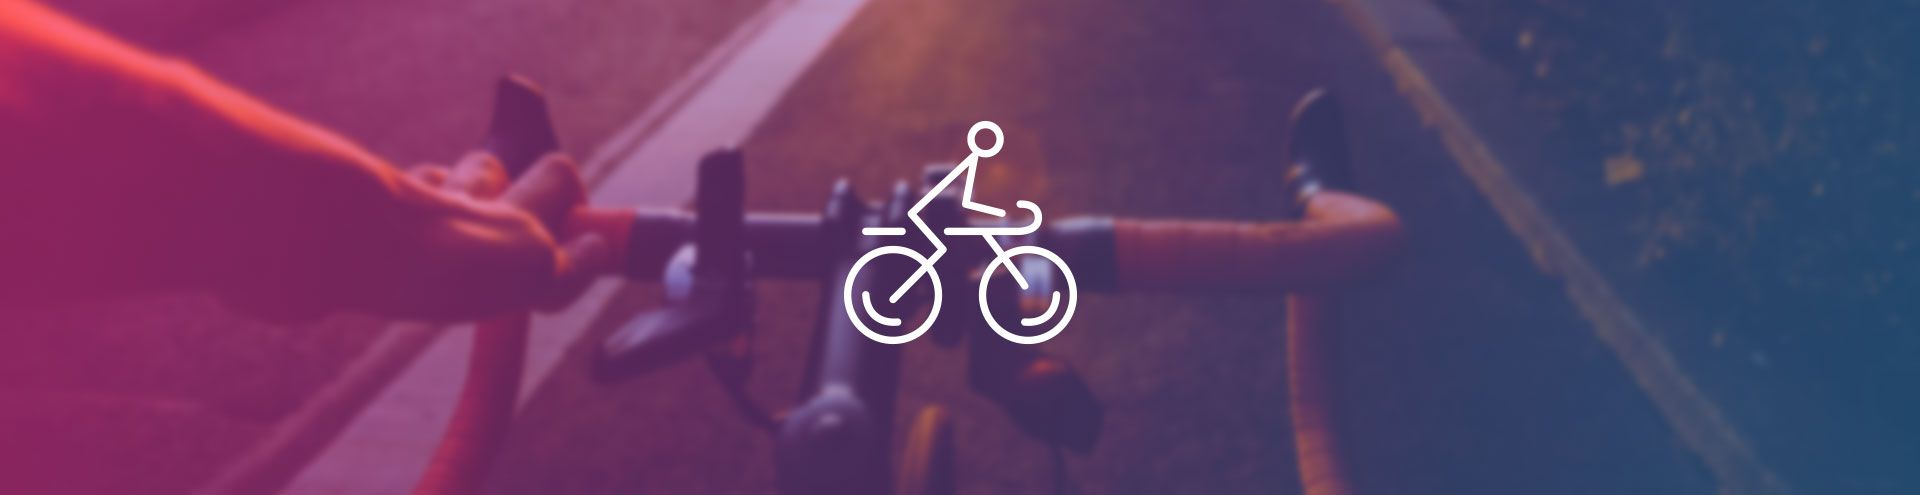 Peer To Peer Bike Sharing Marketplace: How To Make It Successful